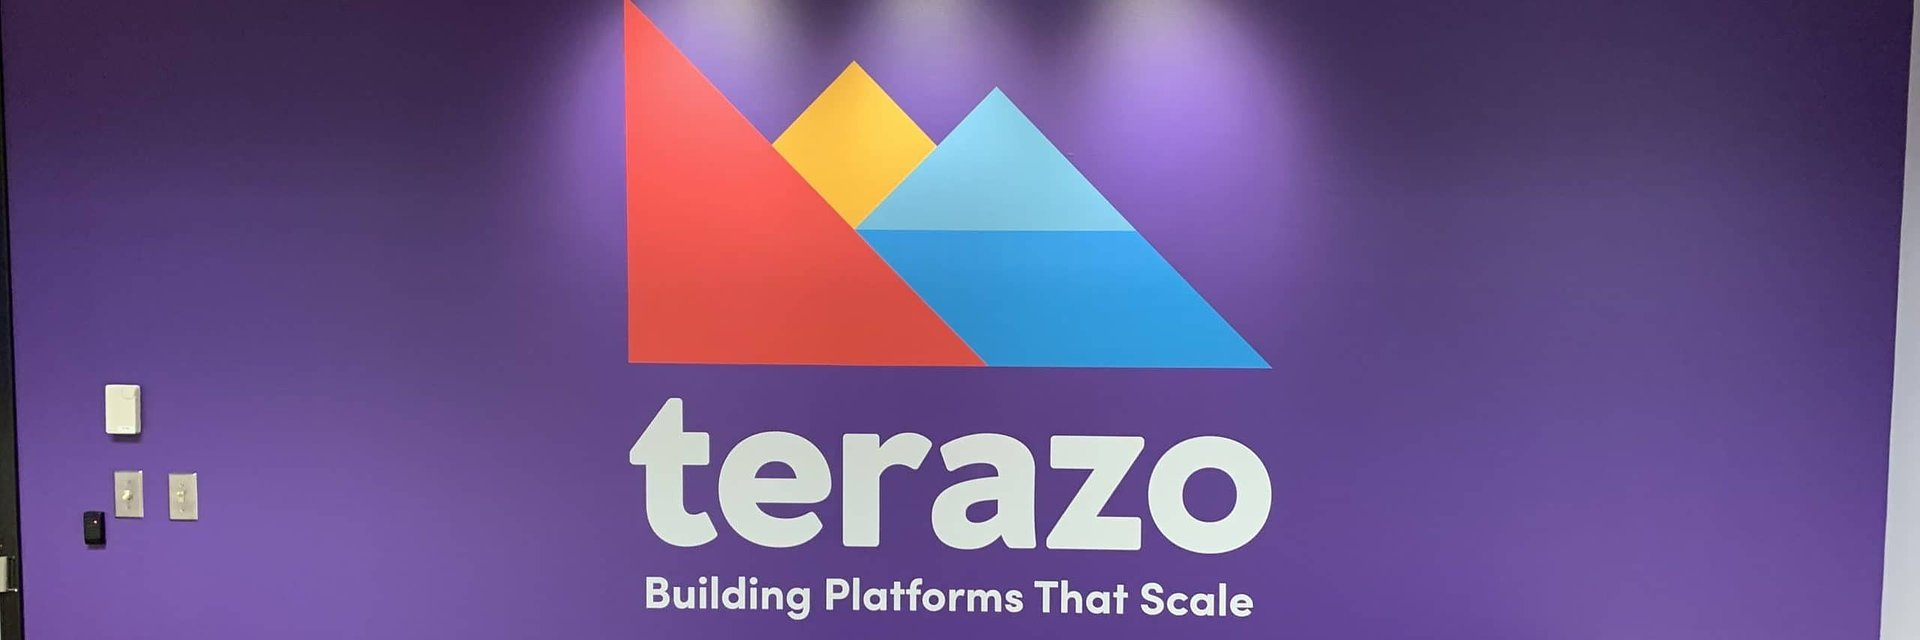 Rapidly-Growing Software & Managed Services Firm APIvista Rebrands As Terazo